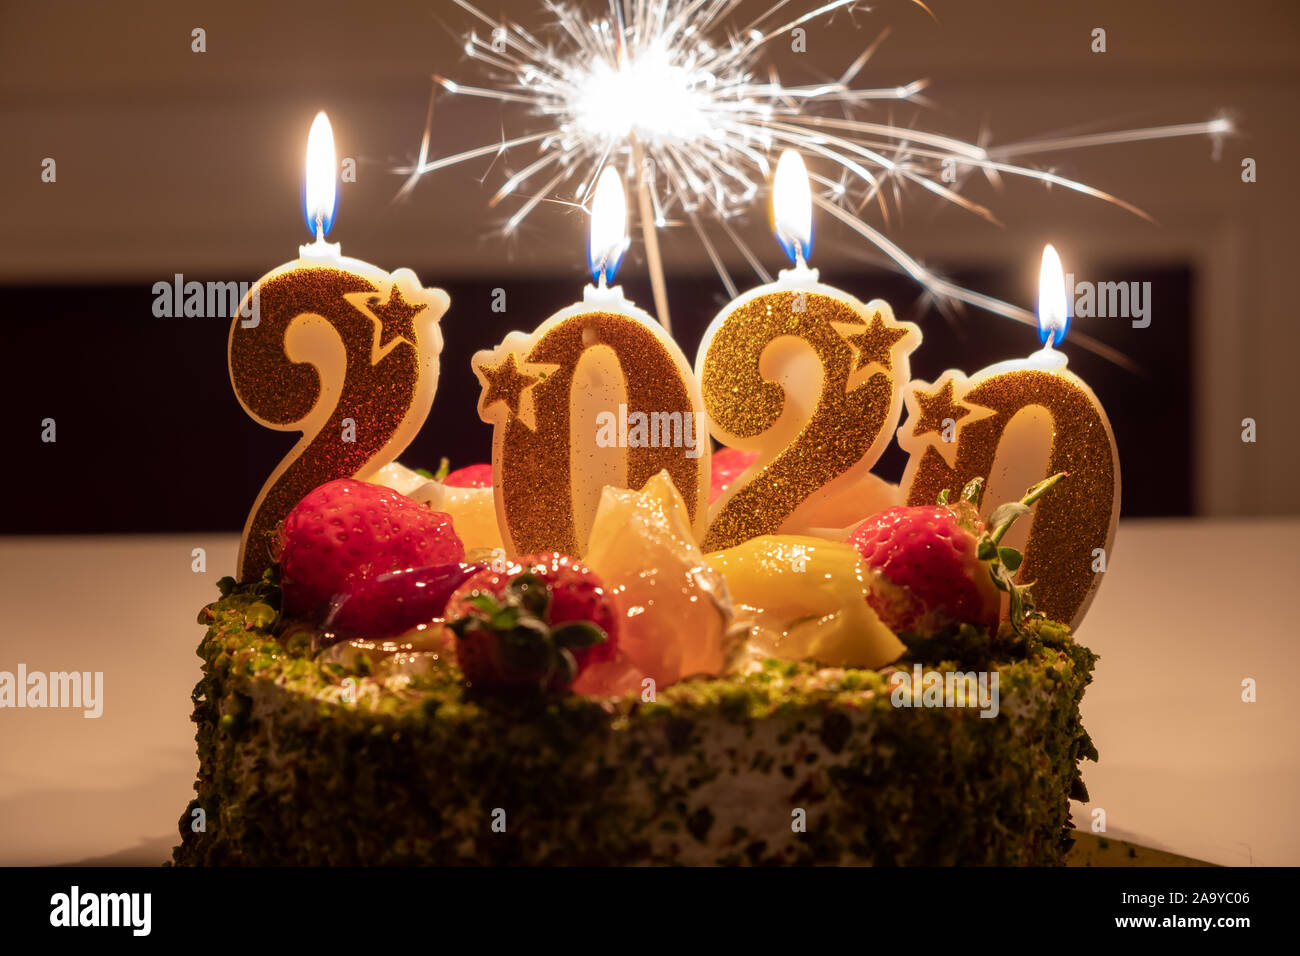 happy new year 2020 high resolution stock photography and images alamy https www alamy com close up of birthday cake with candles shaped number 2020 happy new year 2020 image333131014 html